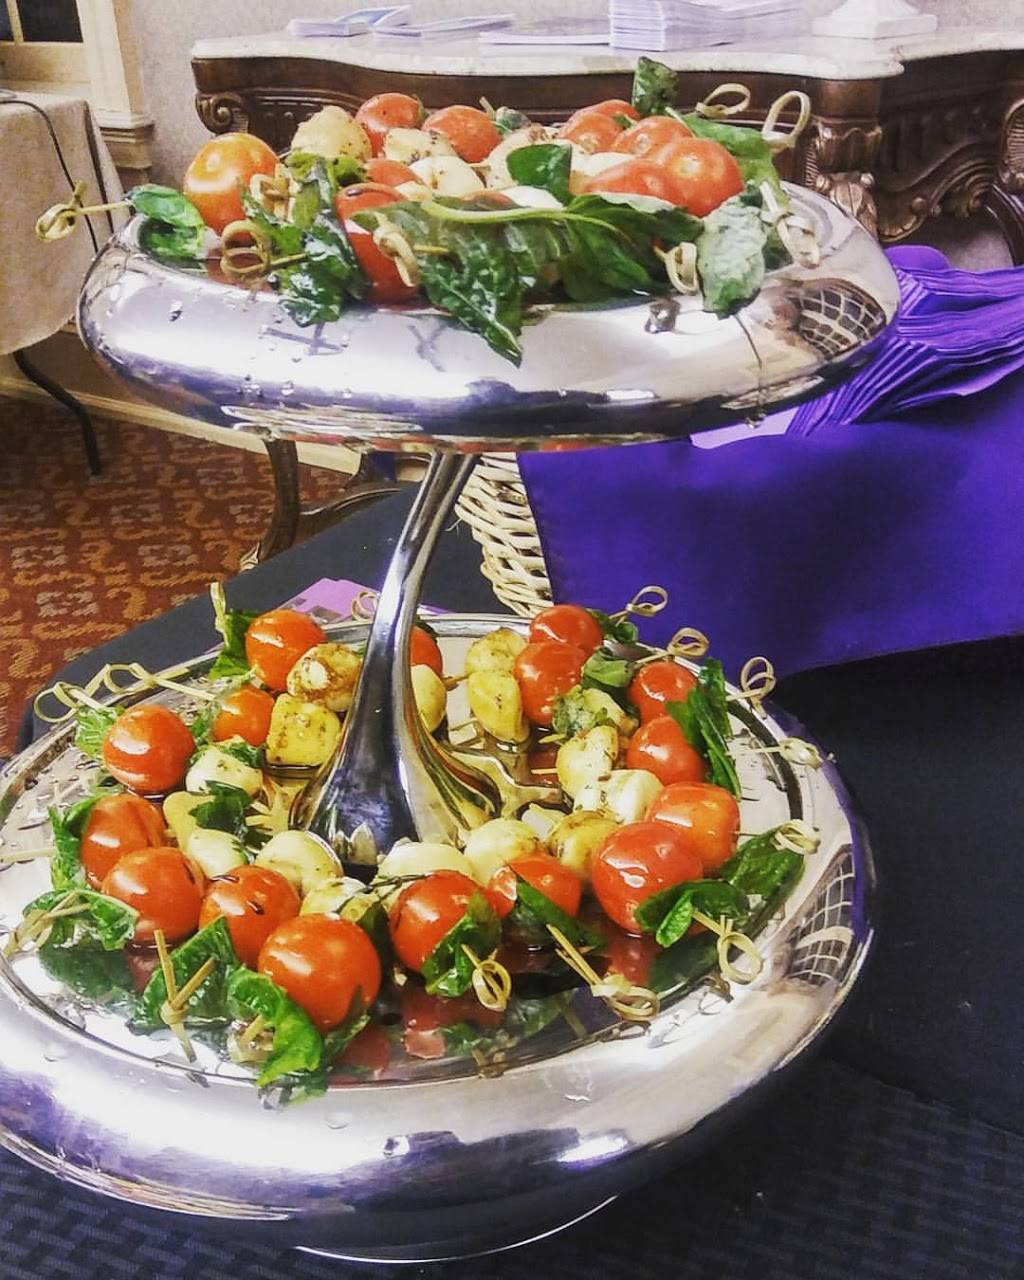 Plum Caterers | restaurant | 4405 Pennell Rd, Aston, PA 19014, USA | 2672235528 OR +1 267-223-5528